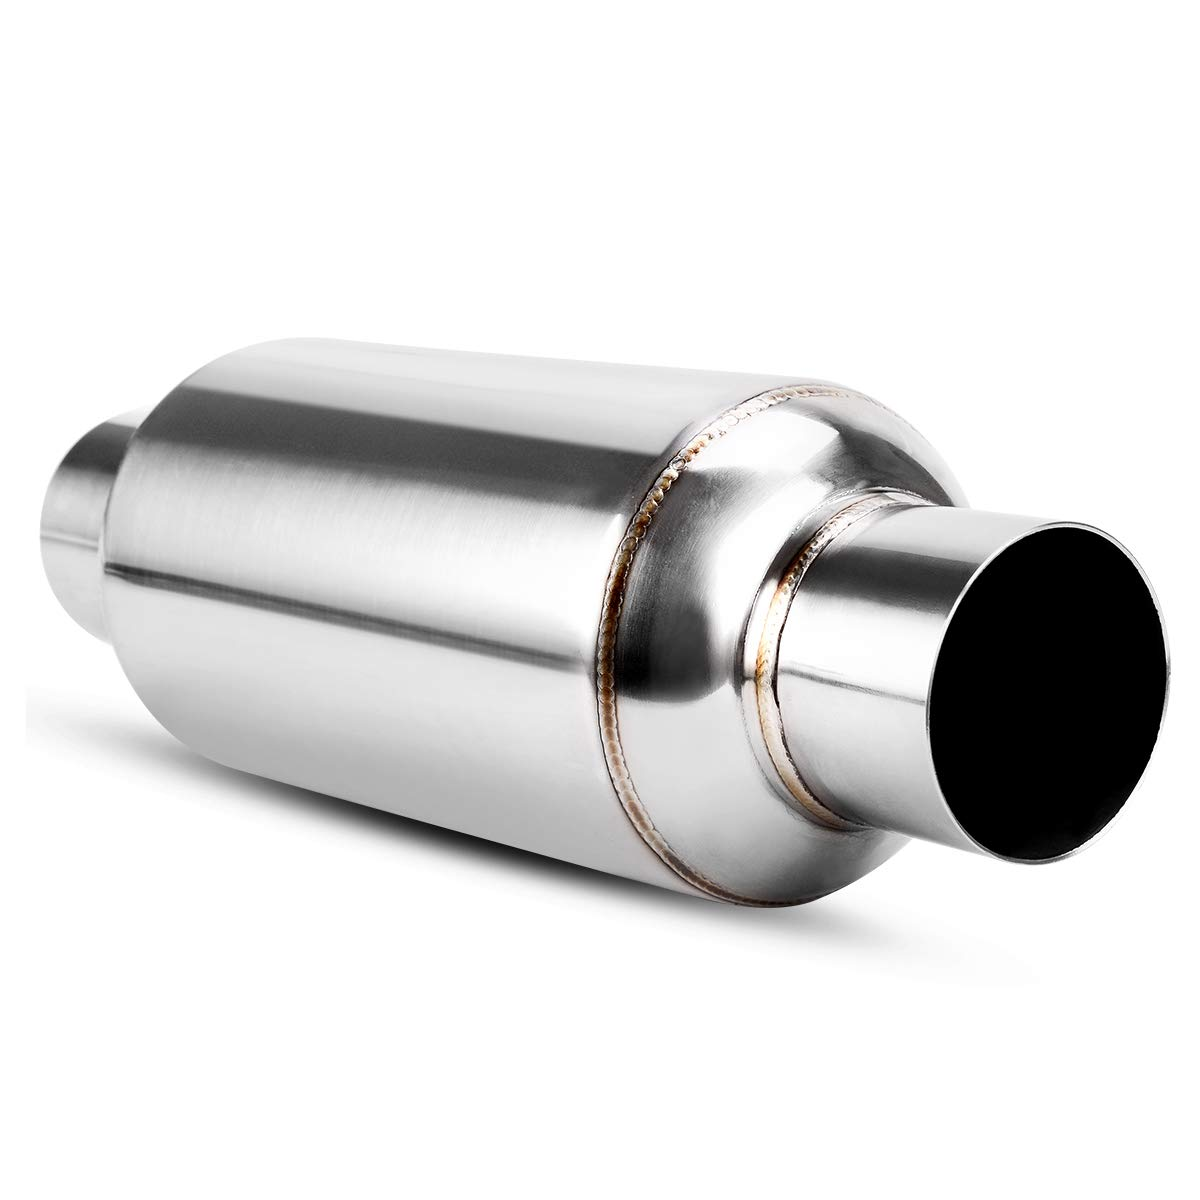 2.25 Inch Inlet//Outlet Muffler AUTOSAVER88 Universal Stainless Steel Chrome Exhaust Resonator 12 Overall Length